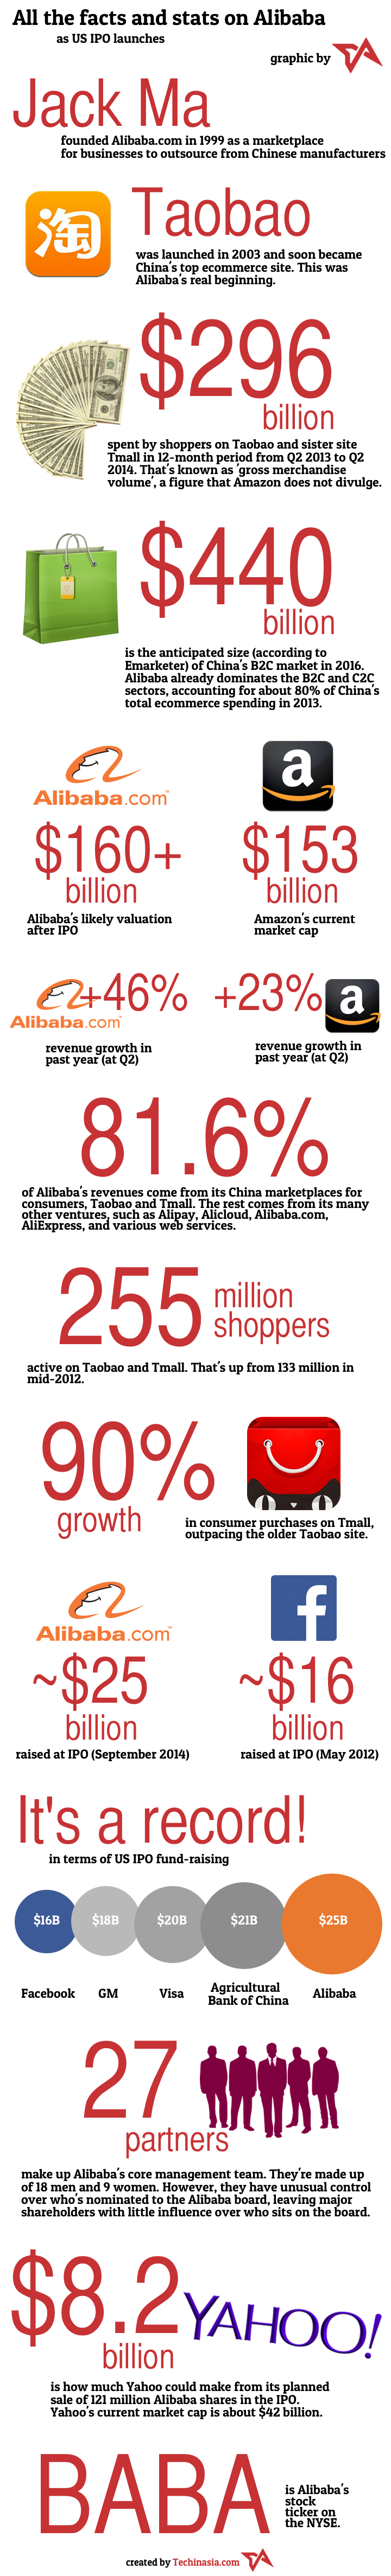 Alibaba-IPO-facts-and-stats-infographic